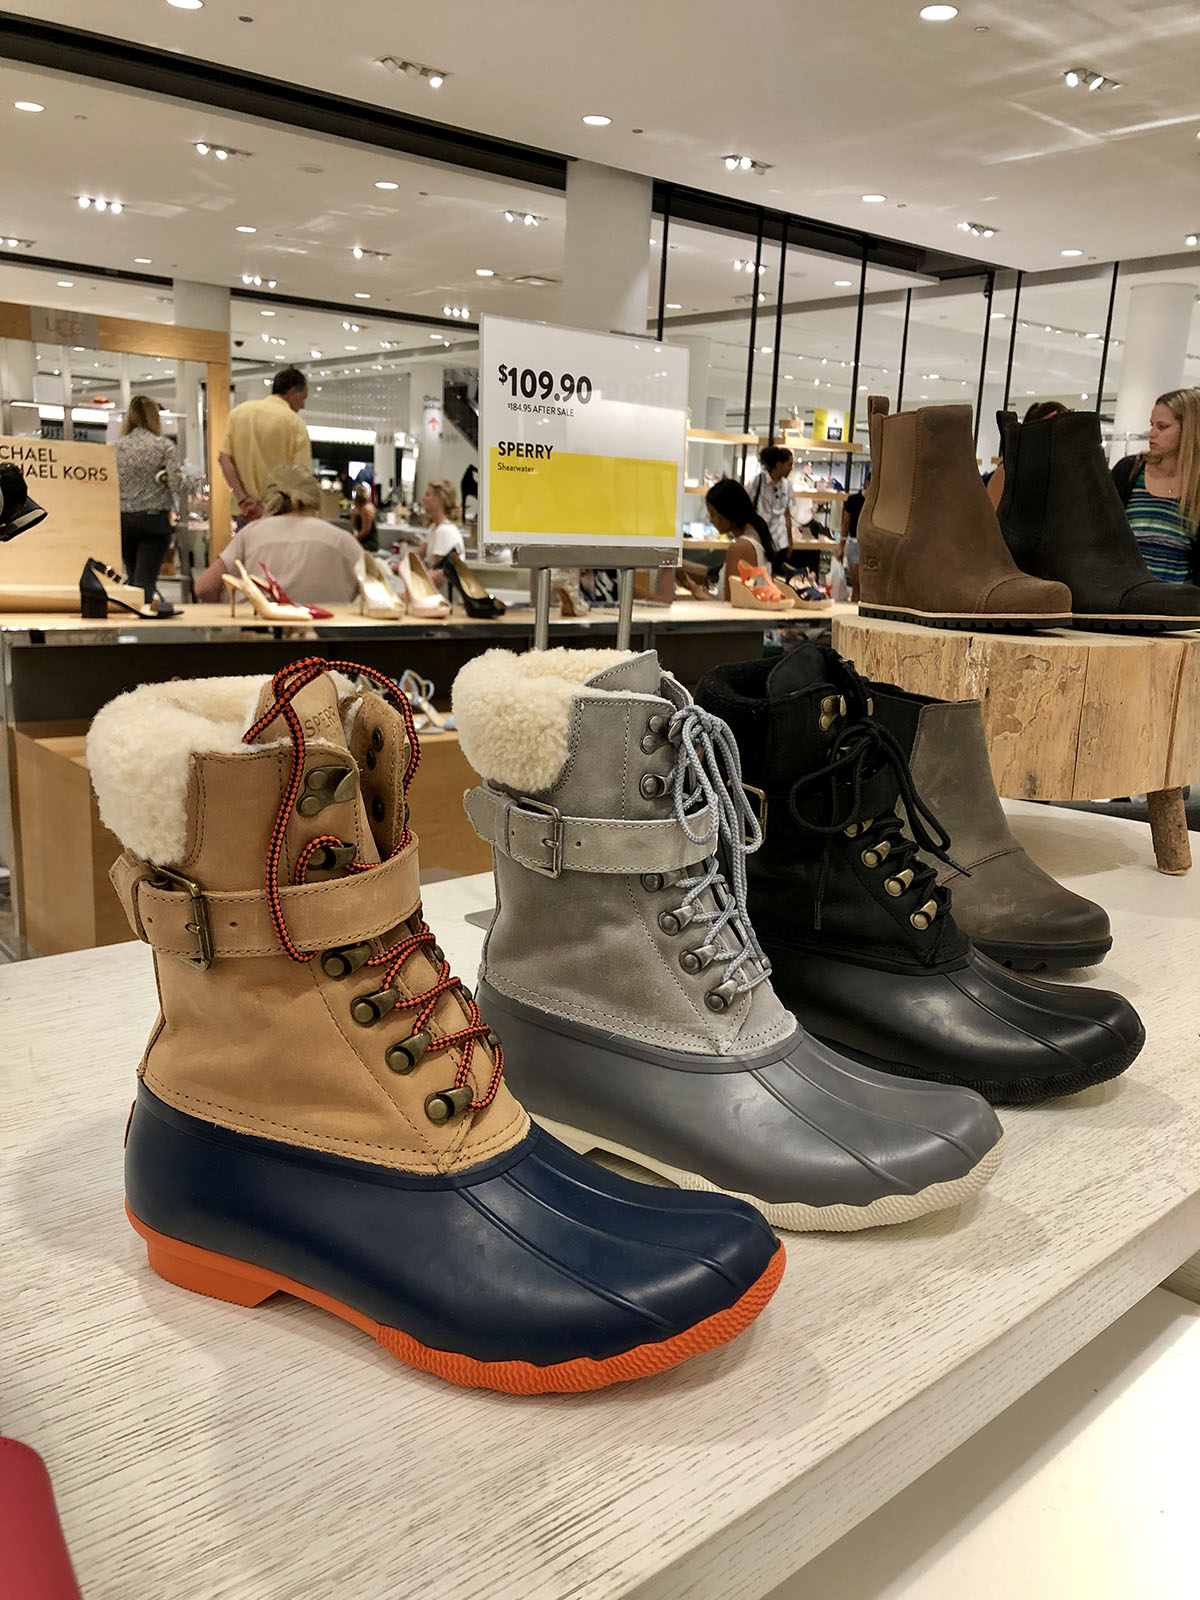 nordstrom sale sperry boots — bows